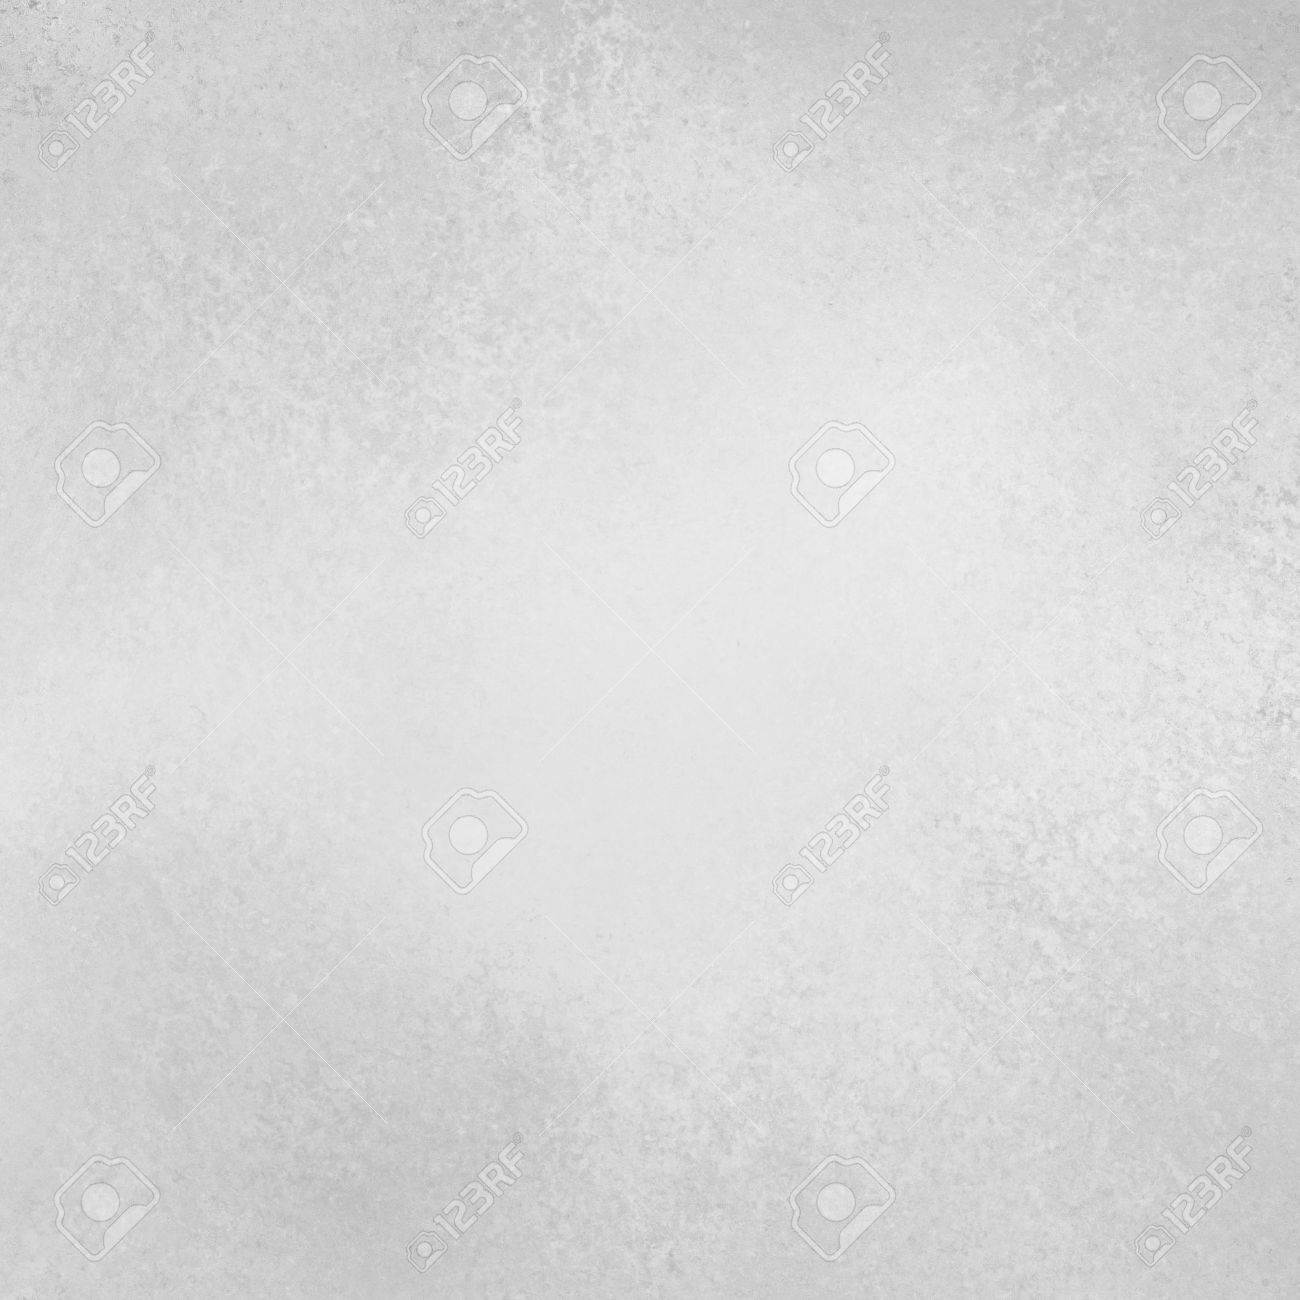 faded off white background texture old gray white dirty paper white background design